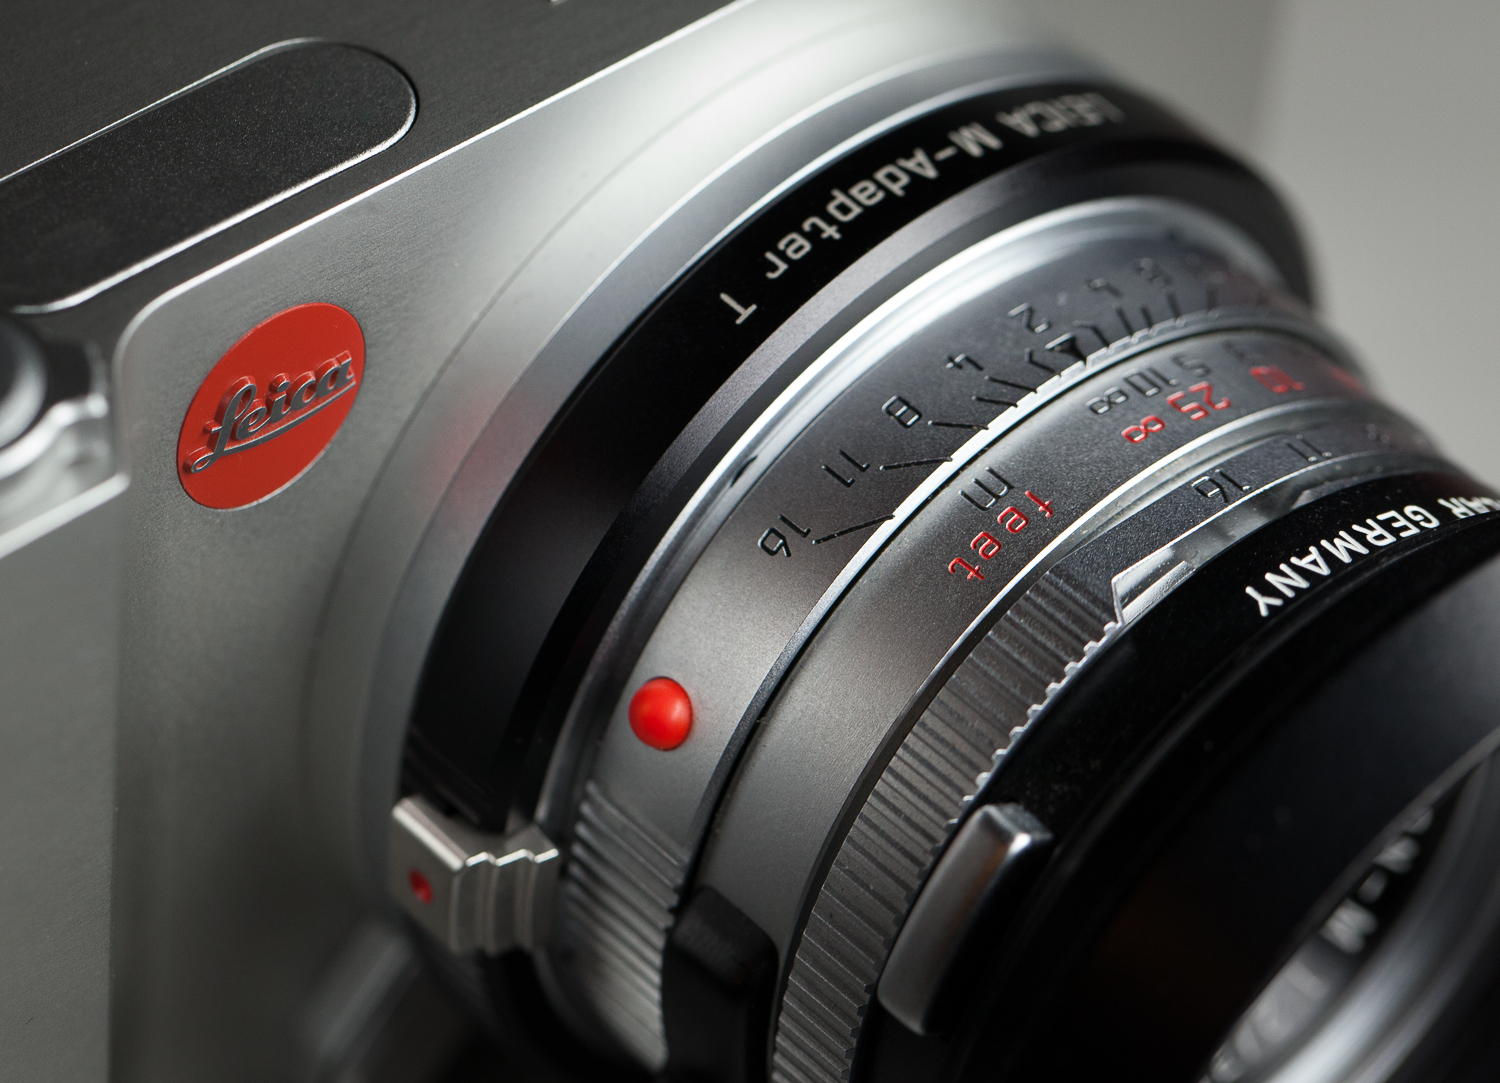 Leica T with the Summicron-M 35/2 pre-asph lens